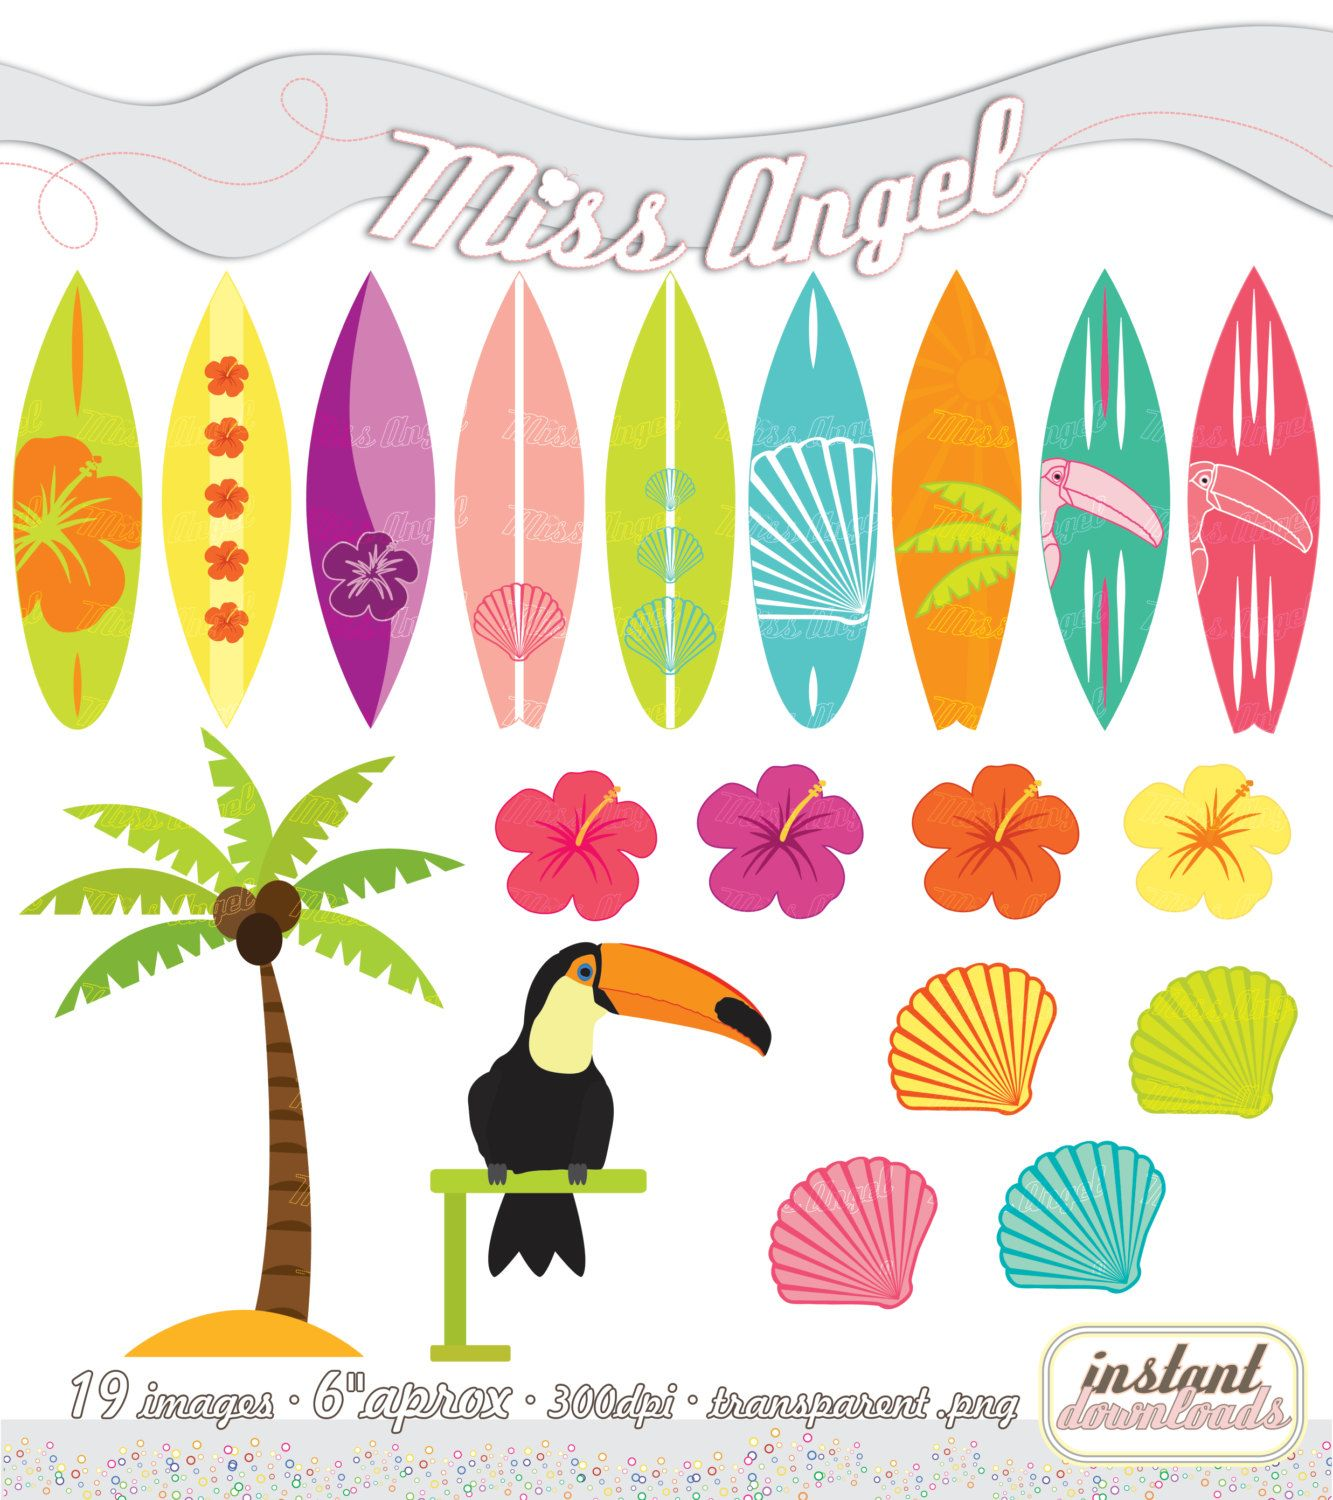 Tablas De Surf Decorativas Clipart Set Summer Printable Surfboards By